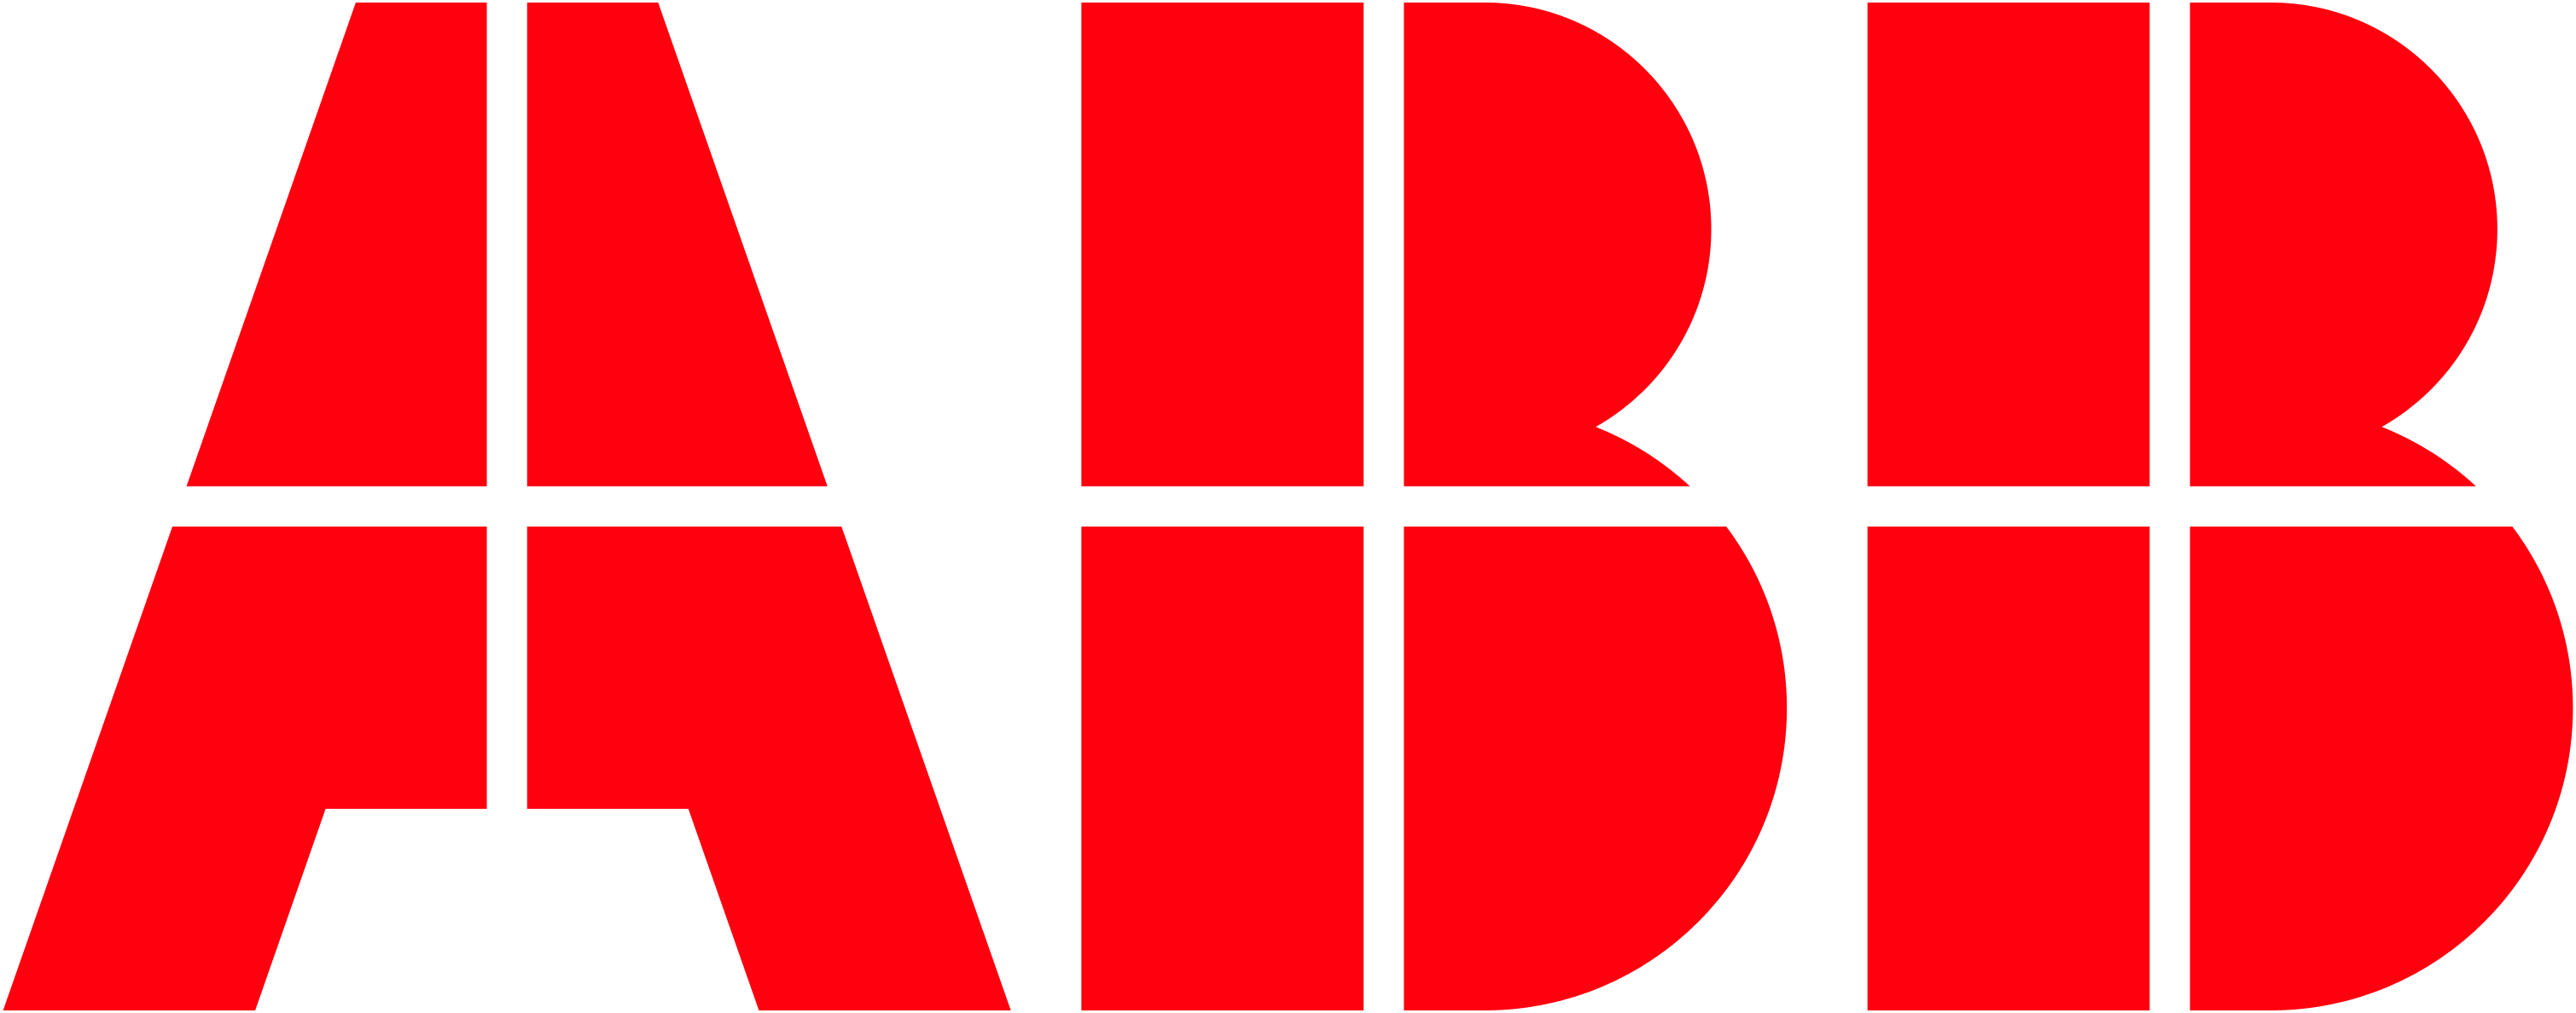 pub:teaching:courses:abb_logo.png